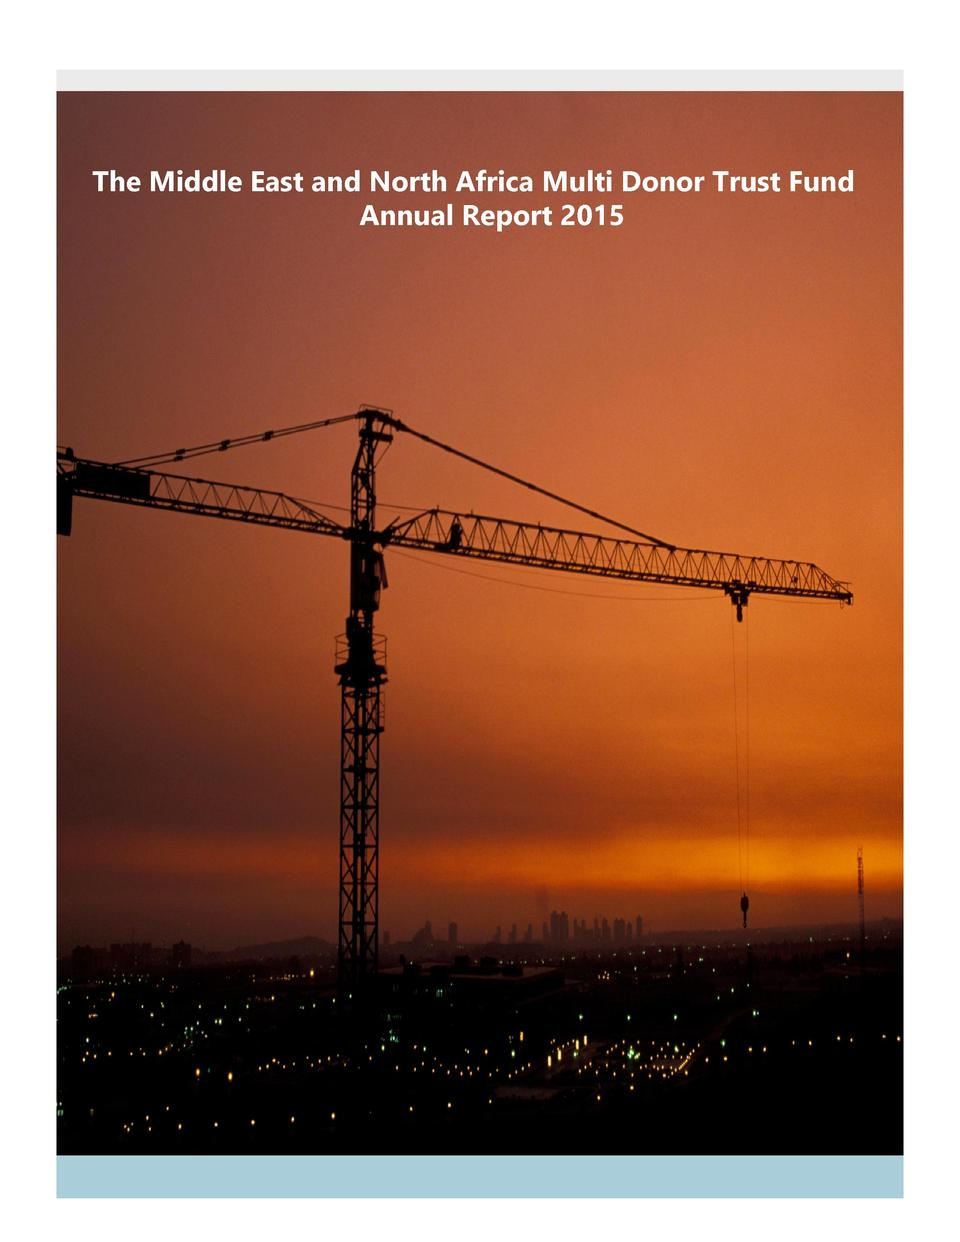 The Middle East and North Africa Multi Donor Trust Fund Annual Report 2015